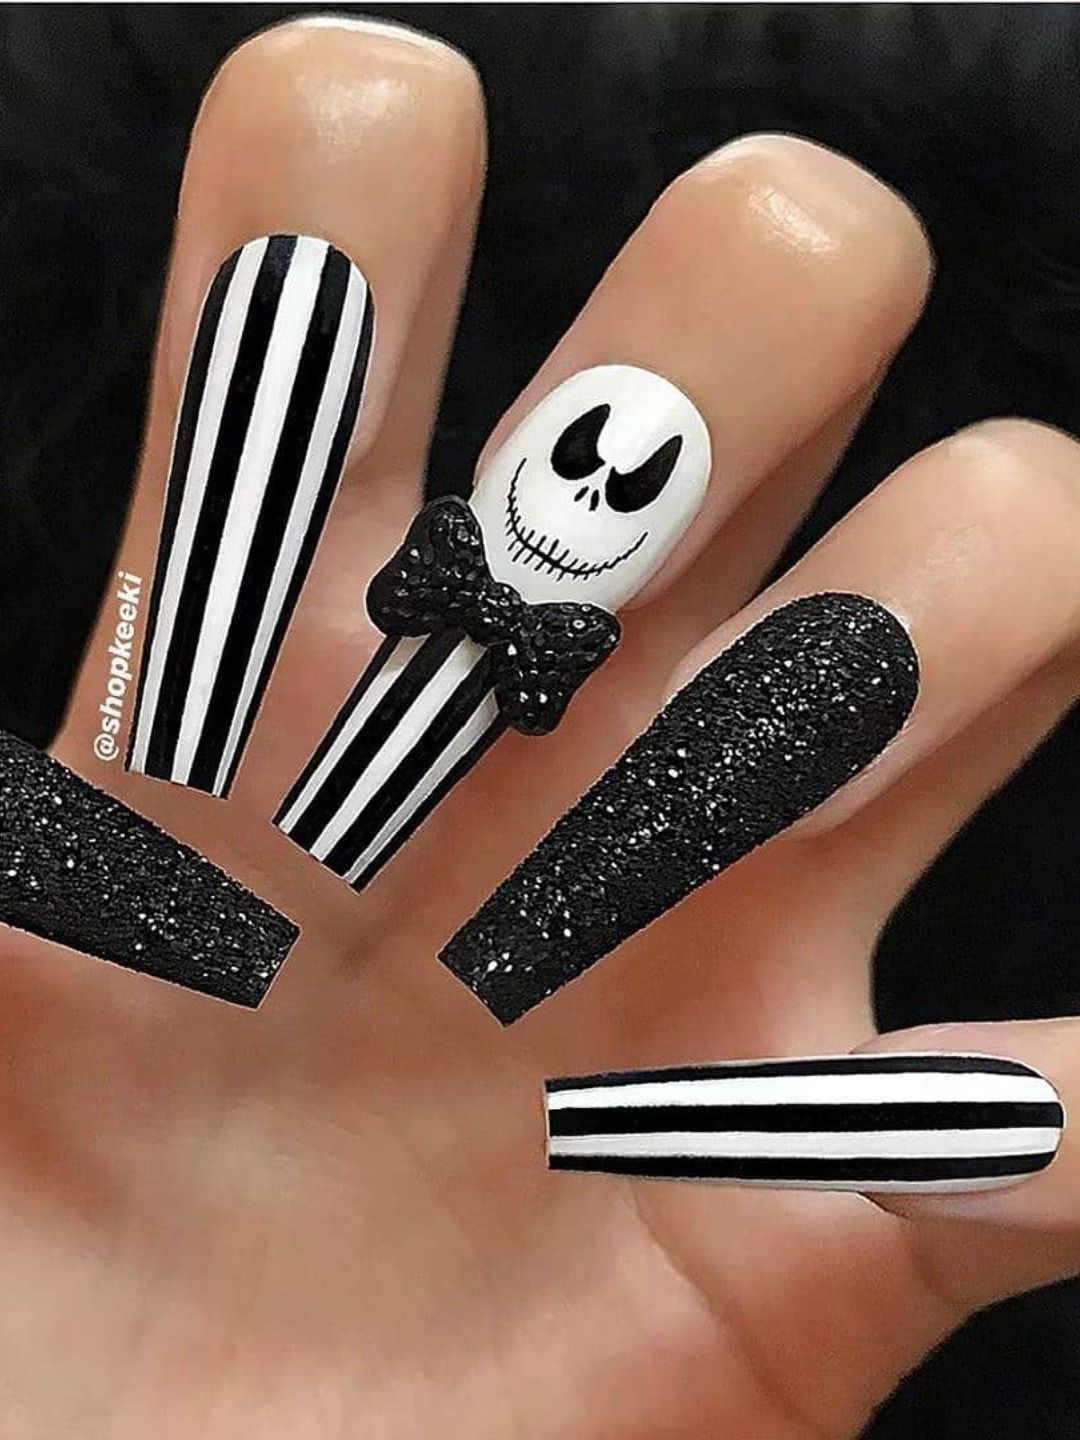 Best Halloween Nail Ideas in 2019 | Nightmare before ...